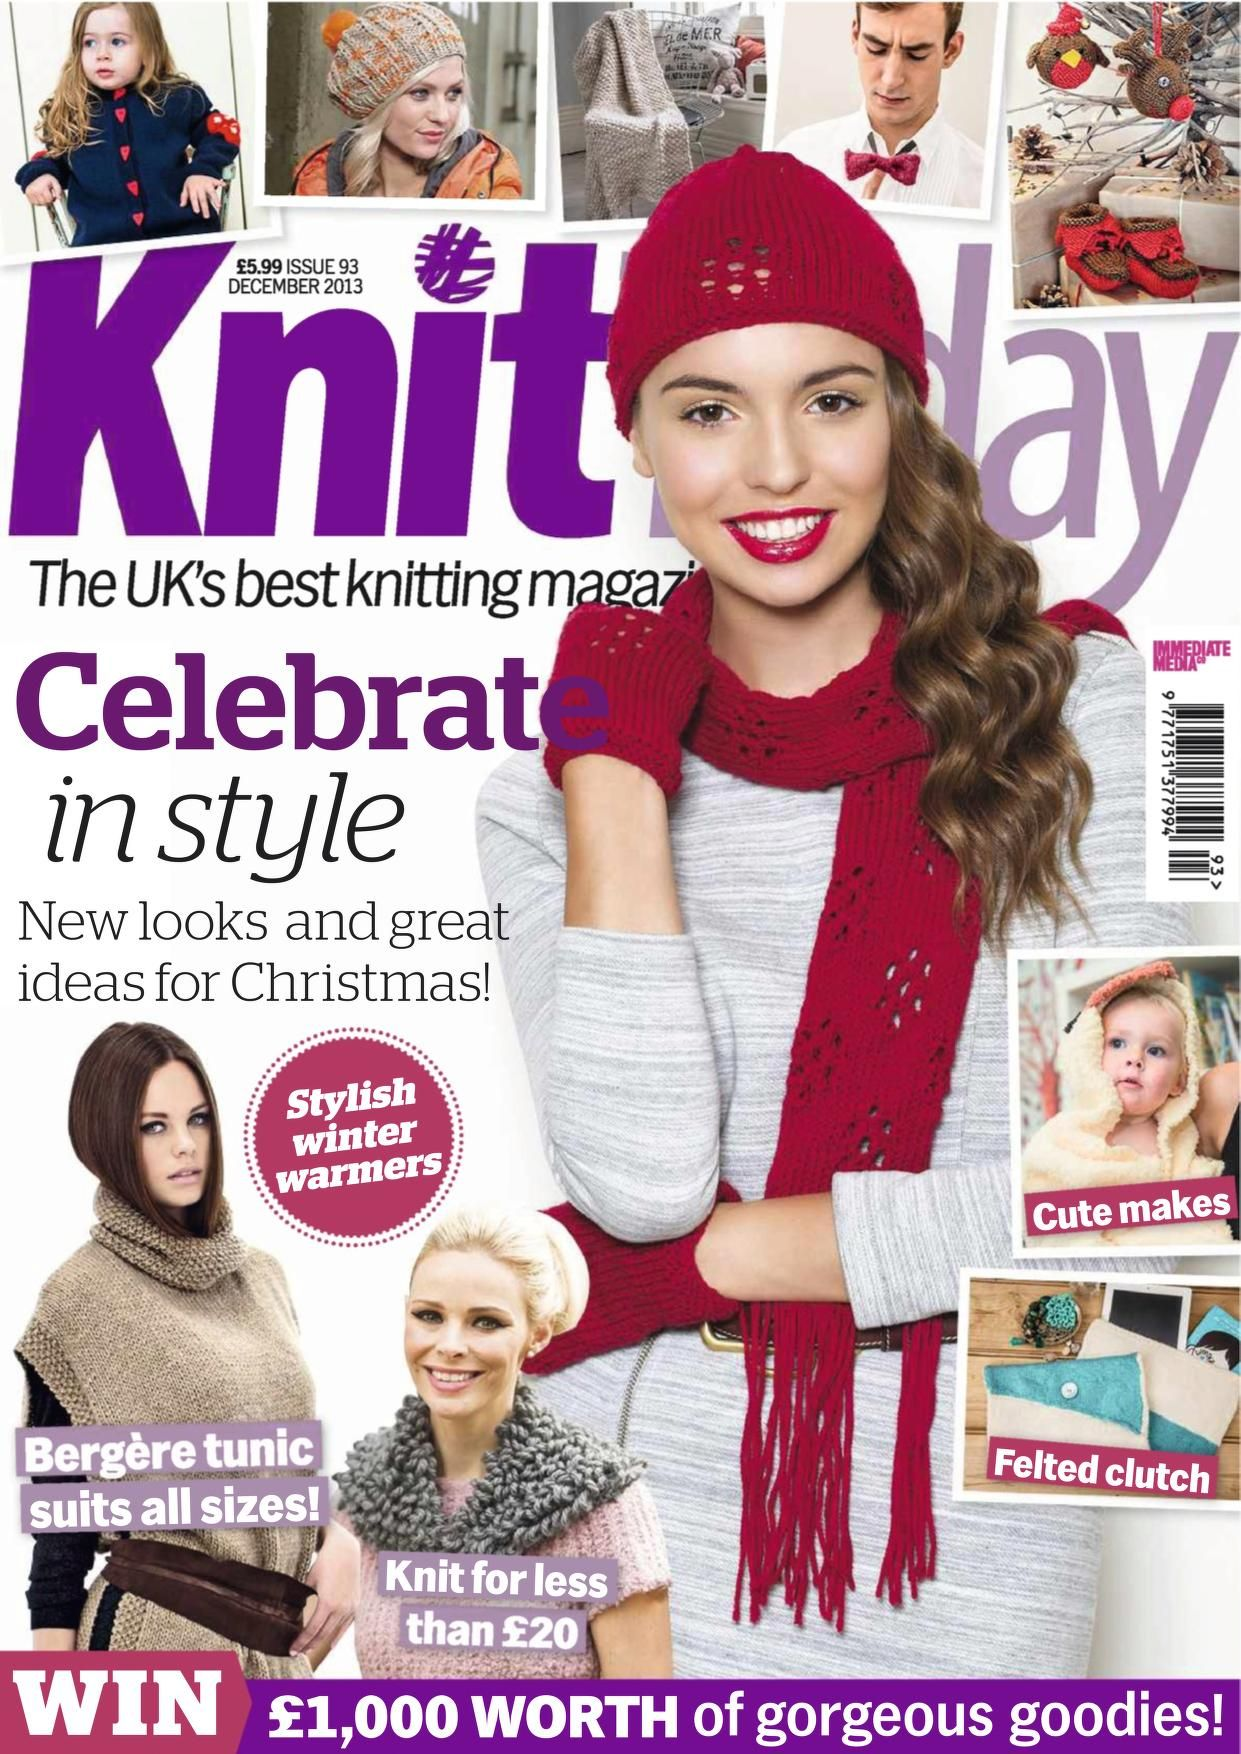 dress - Stylish simply knitting how many issues video